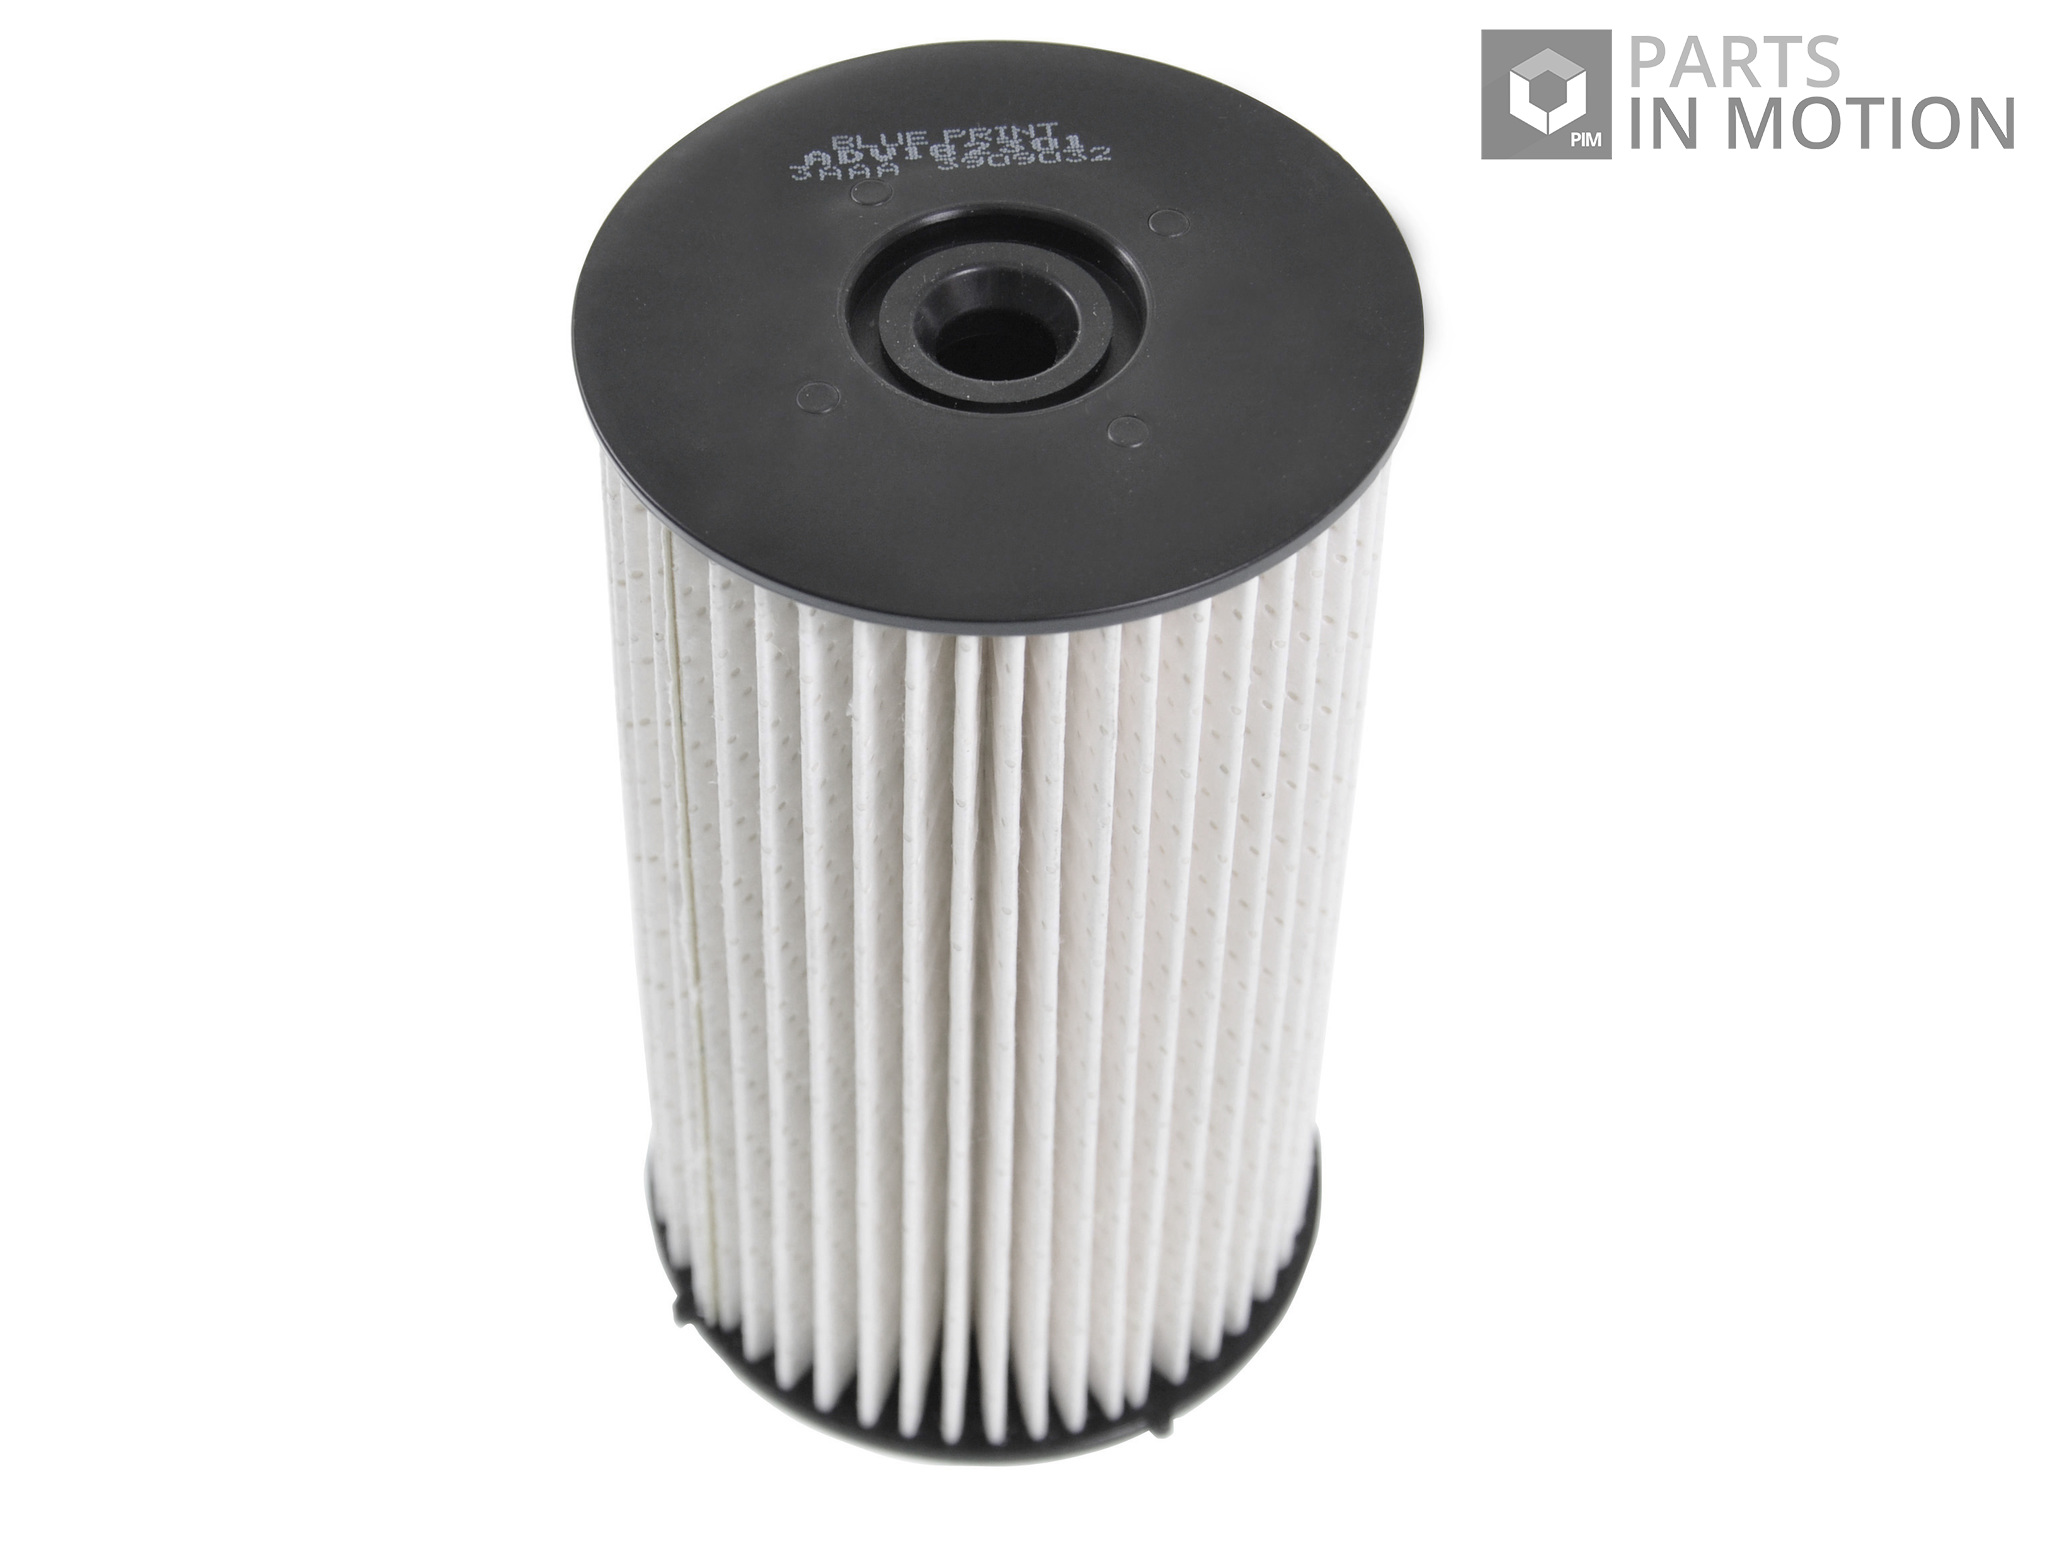 Skoda Octavia 1Z3 1.9 TDI Genuine Borg /& Beck Fuel Filter